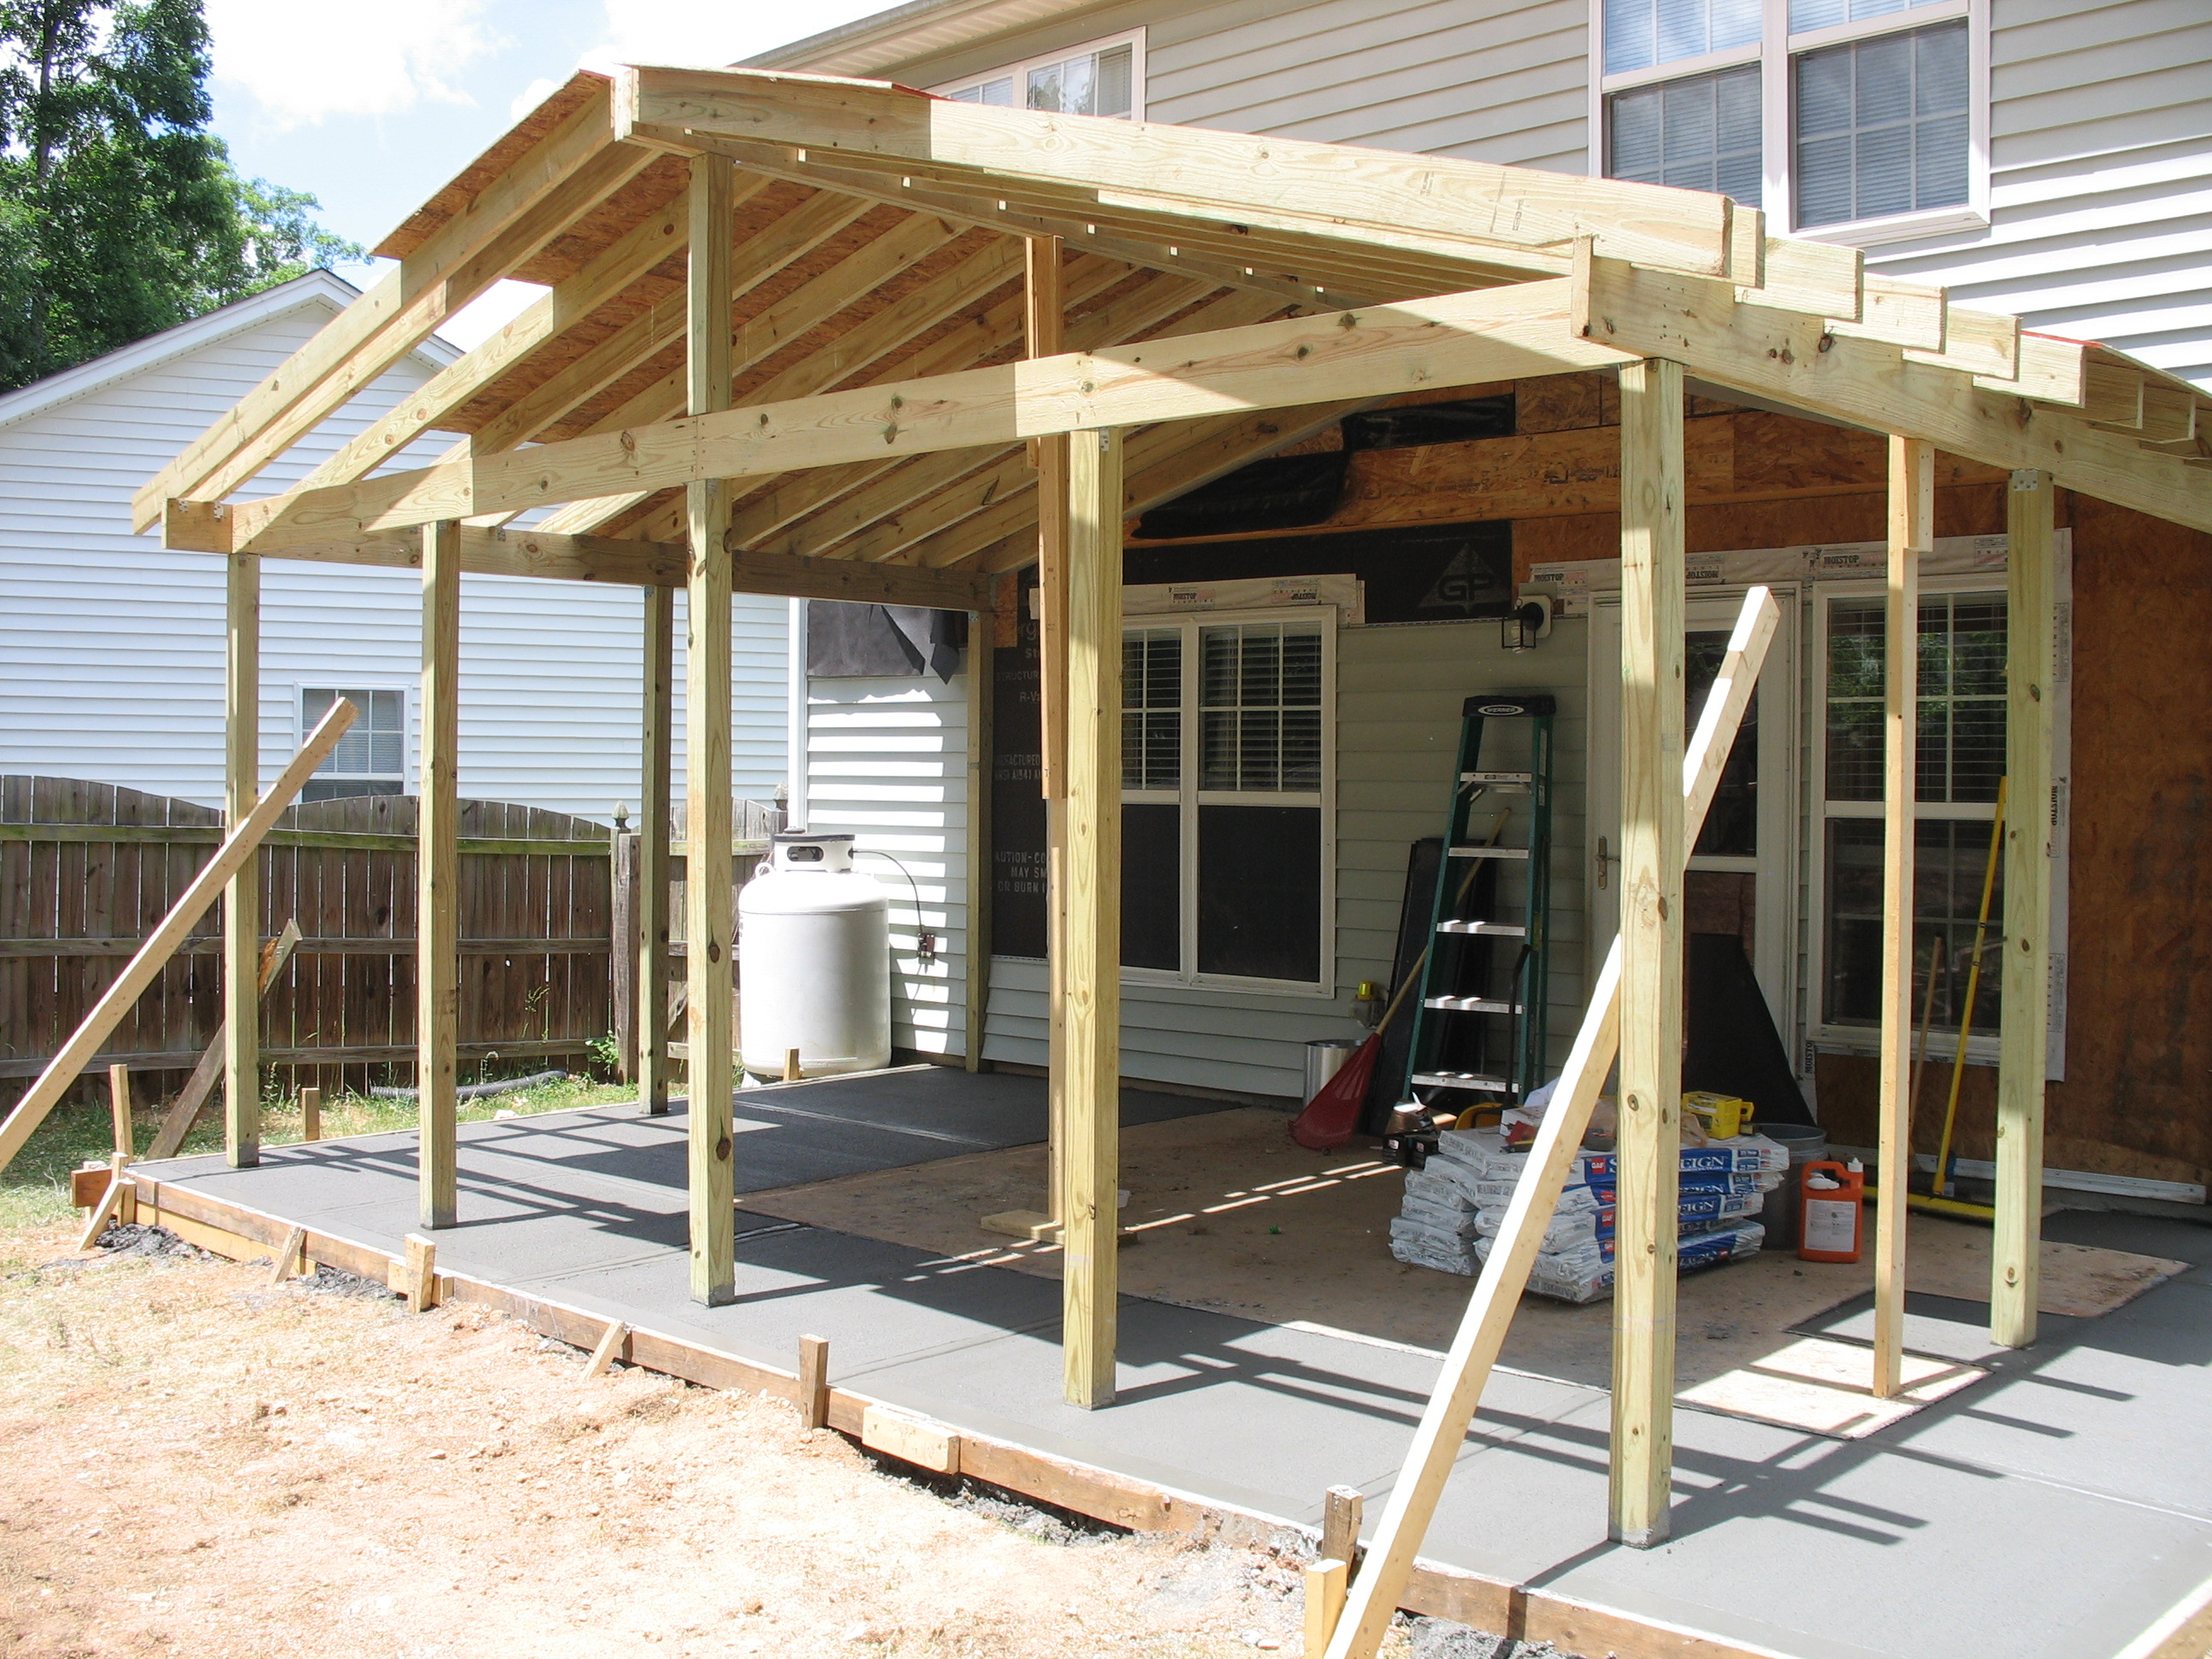 porch will builder screenporchcedararches screened from birmingham adding porches your build what scratch builde we be